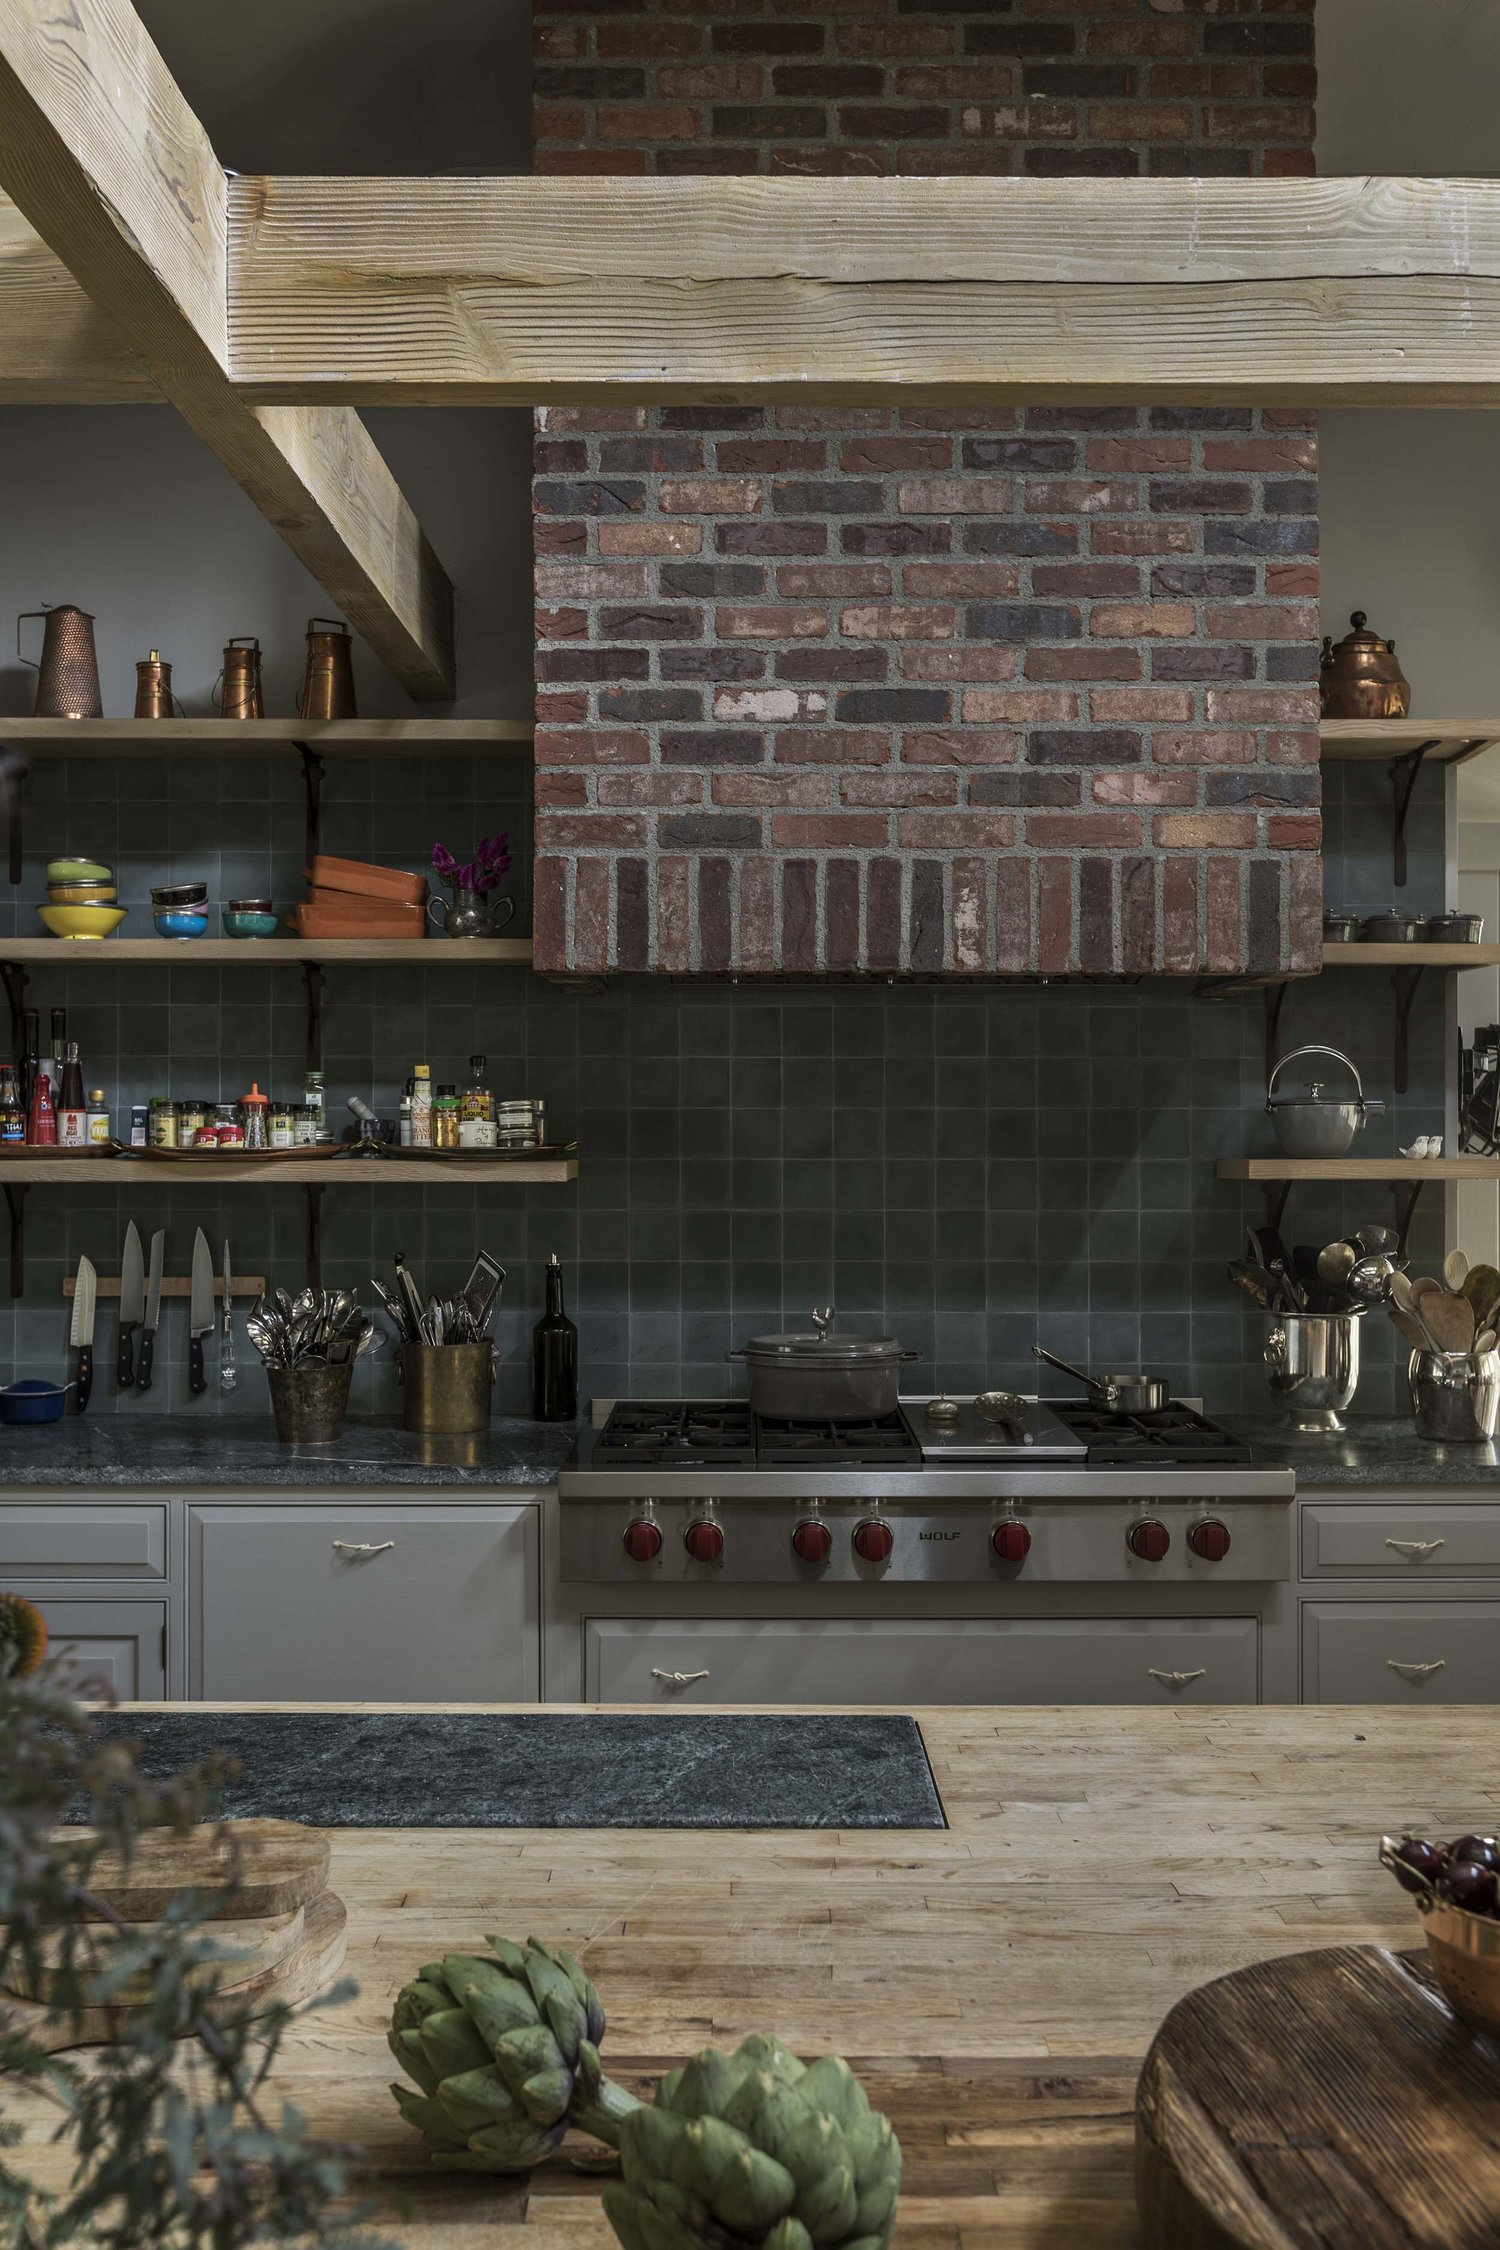 Reath-Design-Brick-Kitchen.jpeg